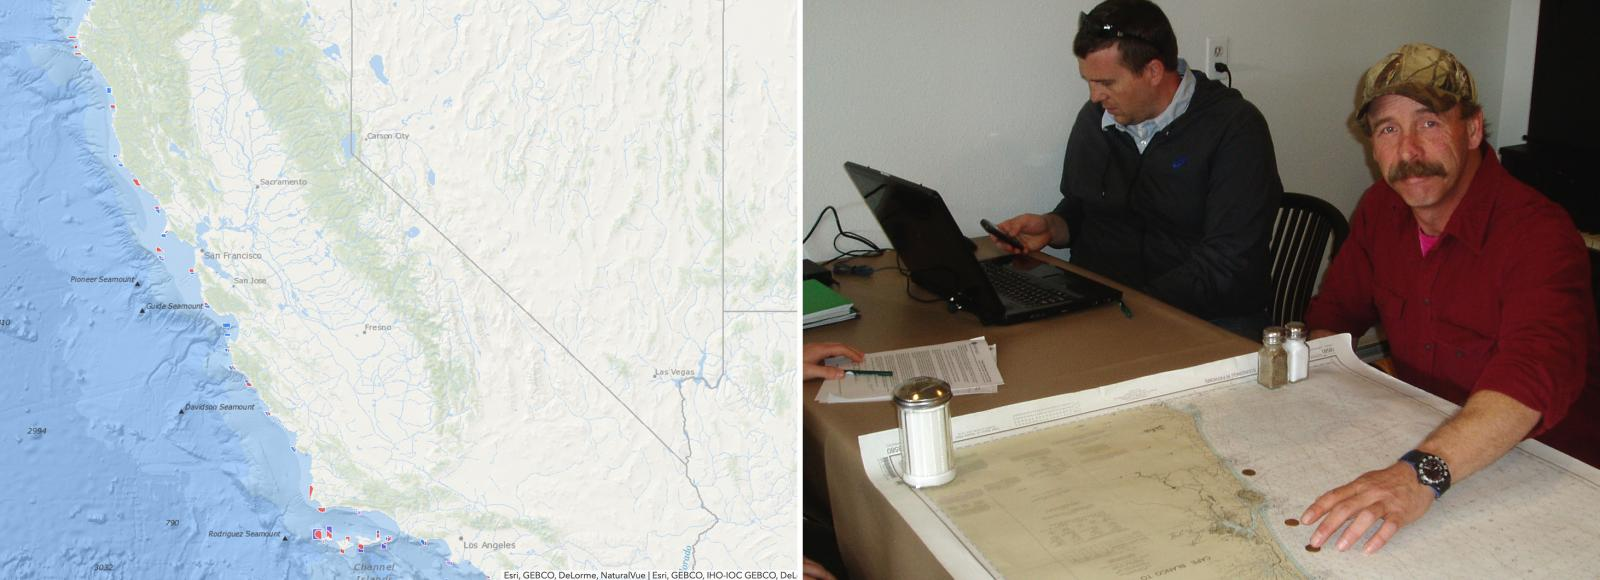 Two images side-by-side: Left image: A digital map showing small areas marked in red or blue along the California coast. Right image: A photo of a man, seated at a table, smiling at the camera. His left hand is on a map that is on the table. The map has four pennies on top of it. Another man sits in the background looking at his cell phone.